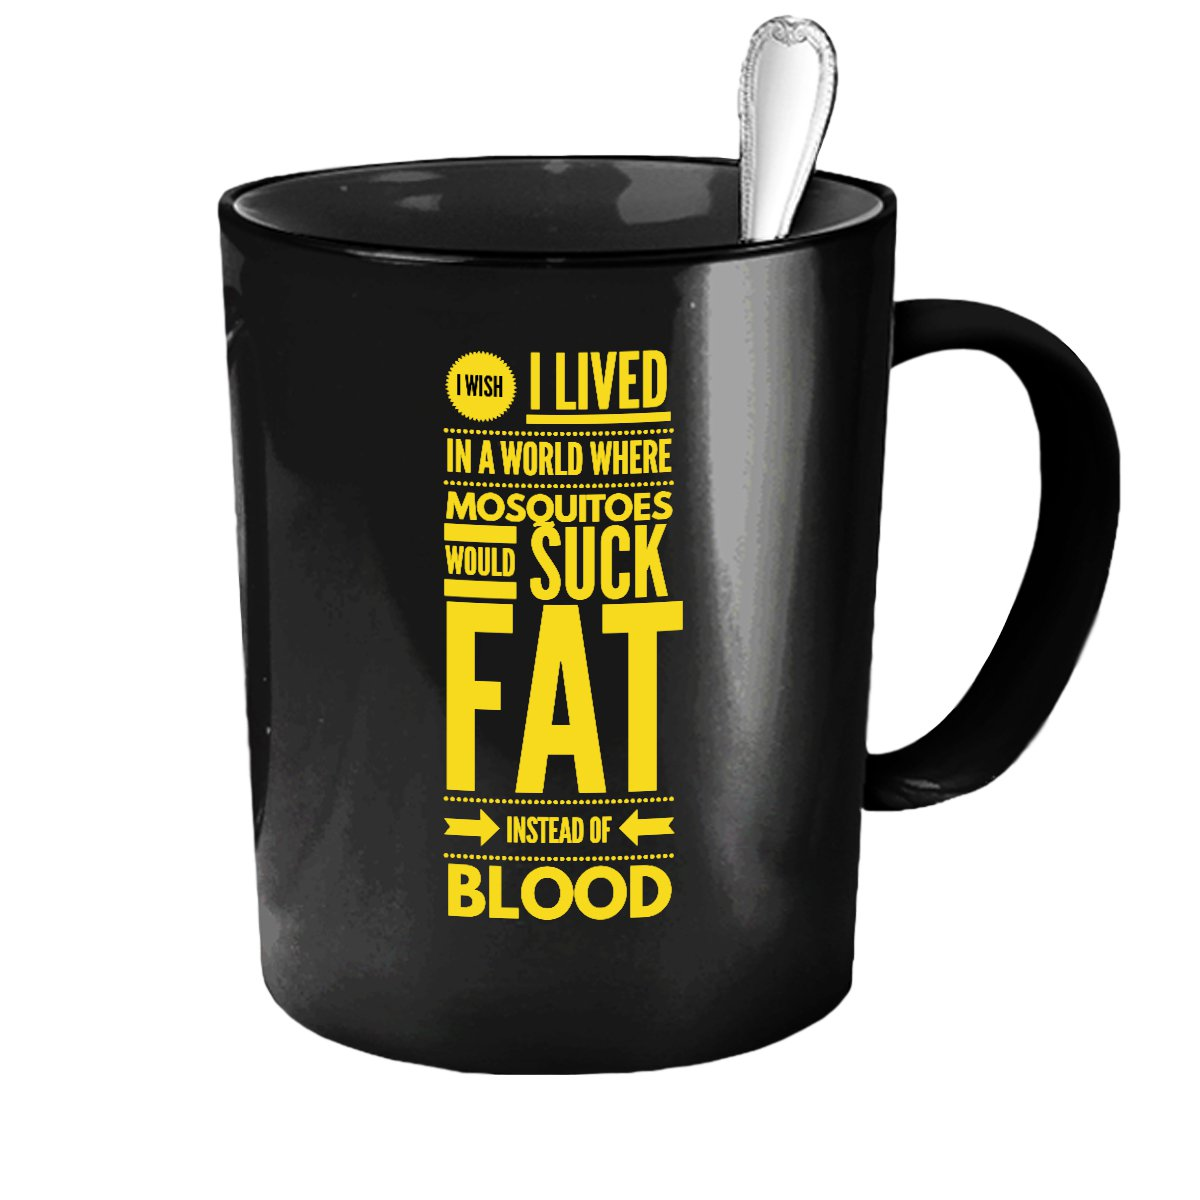 Funny Ceramic Coffee Mug - Fat Instead of Blood - Cute Large Cup (Black) - Best Gift for Men, Women